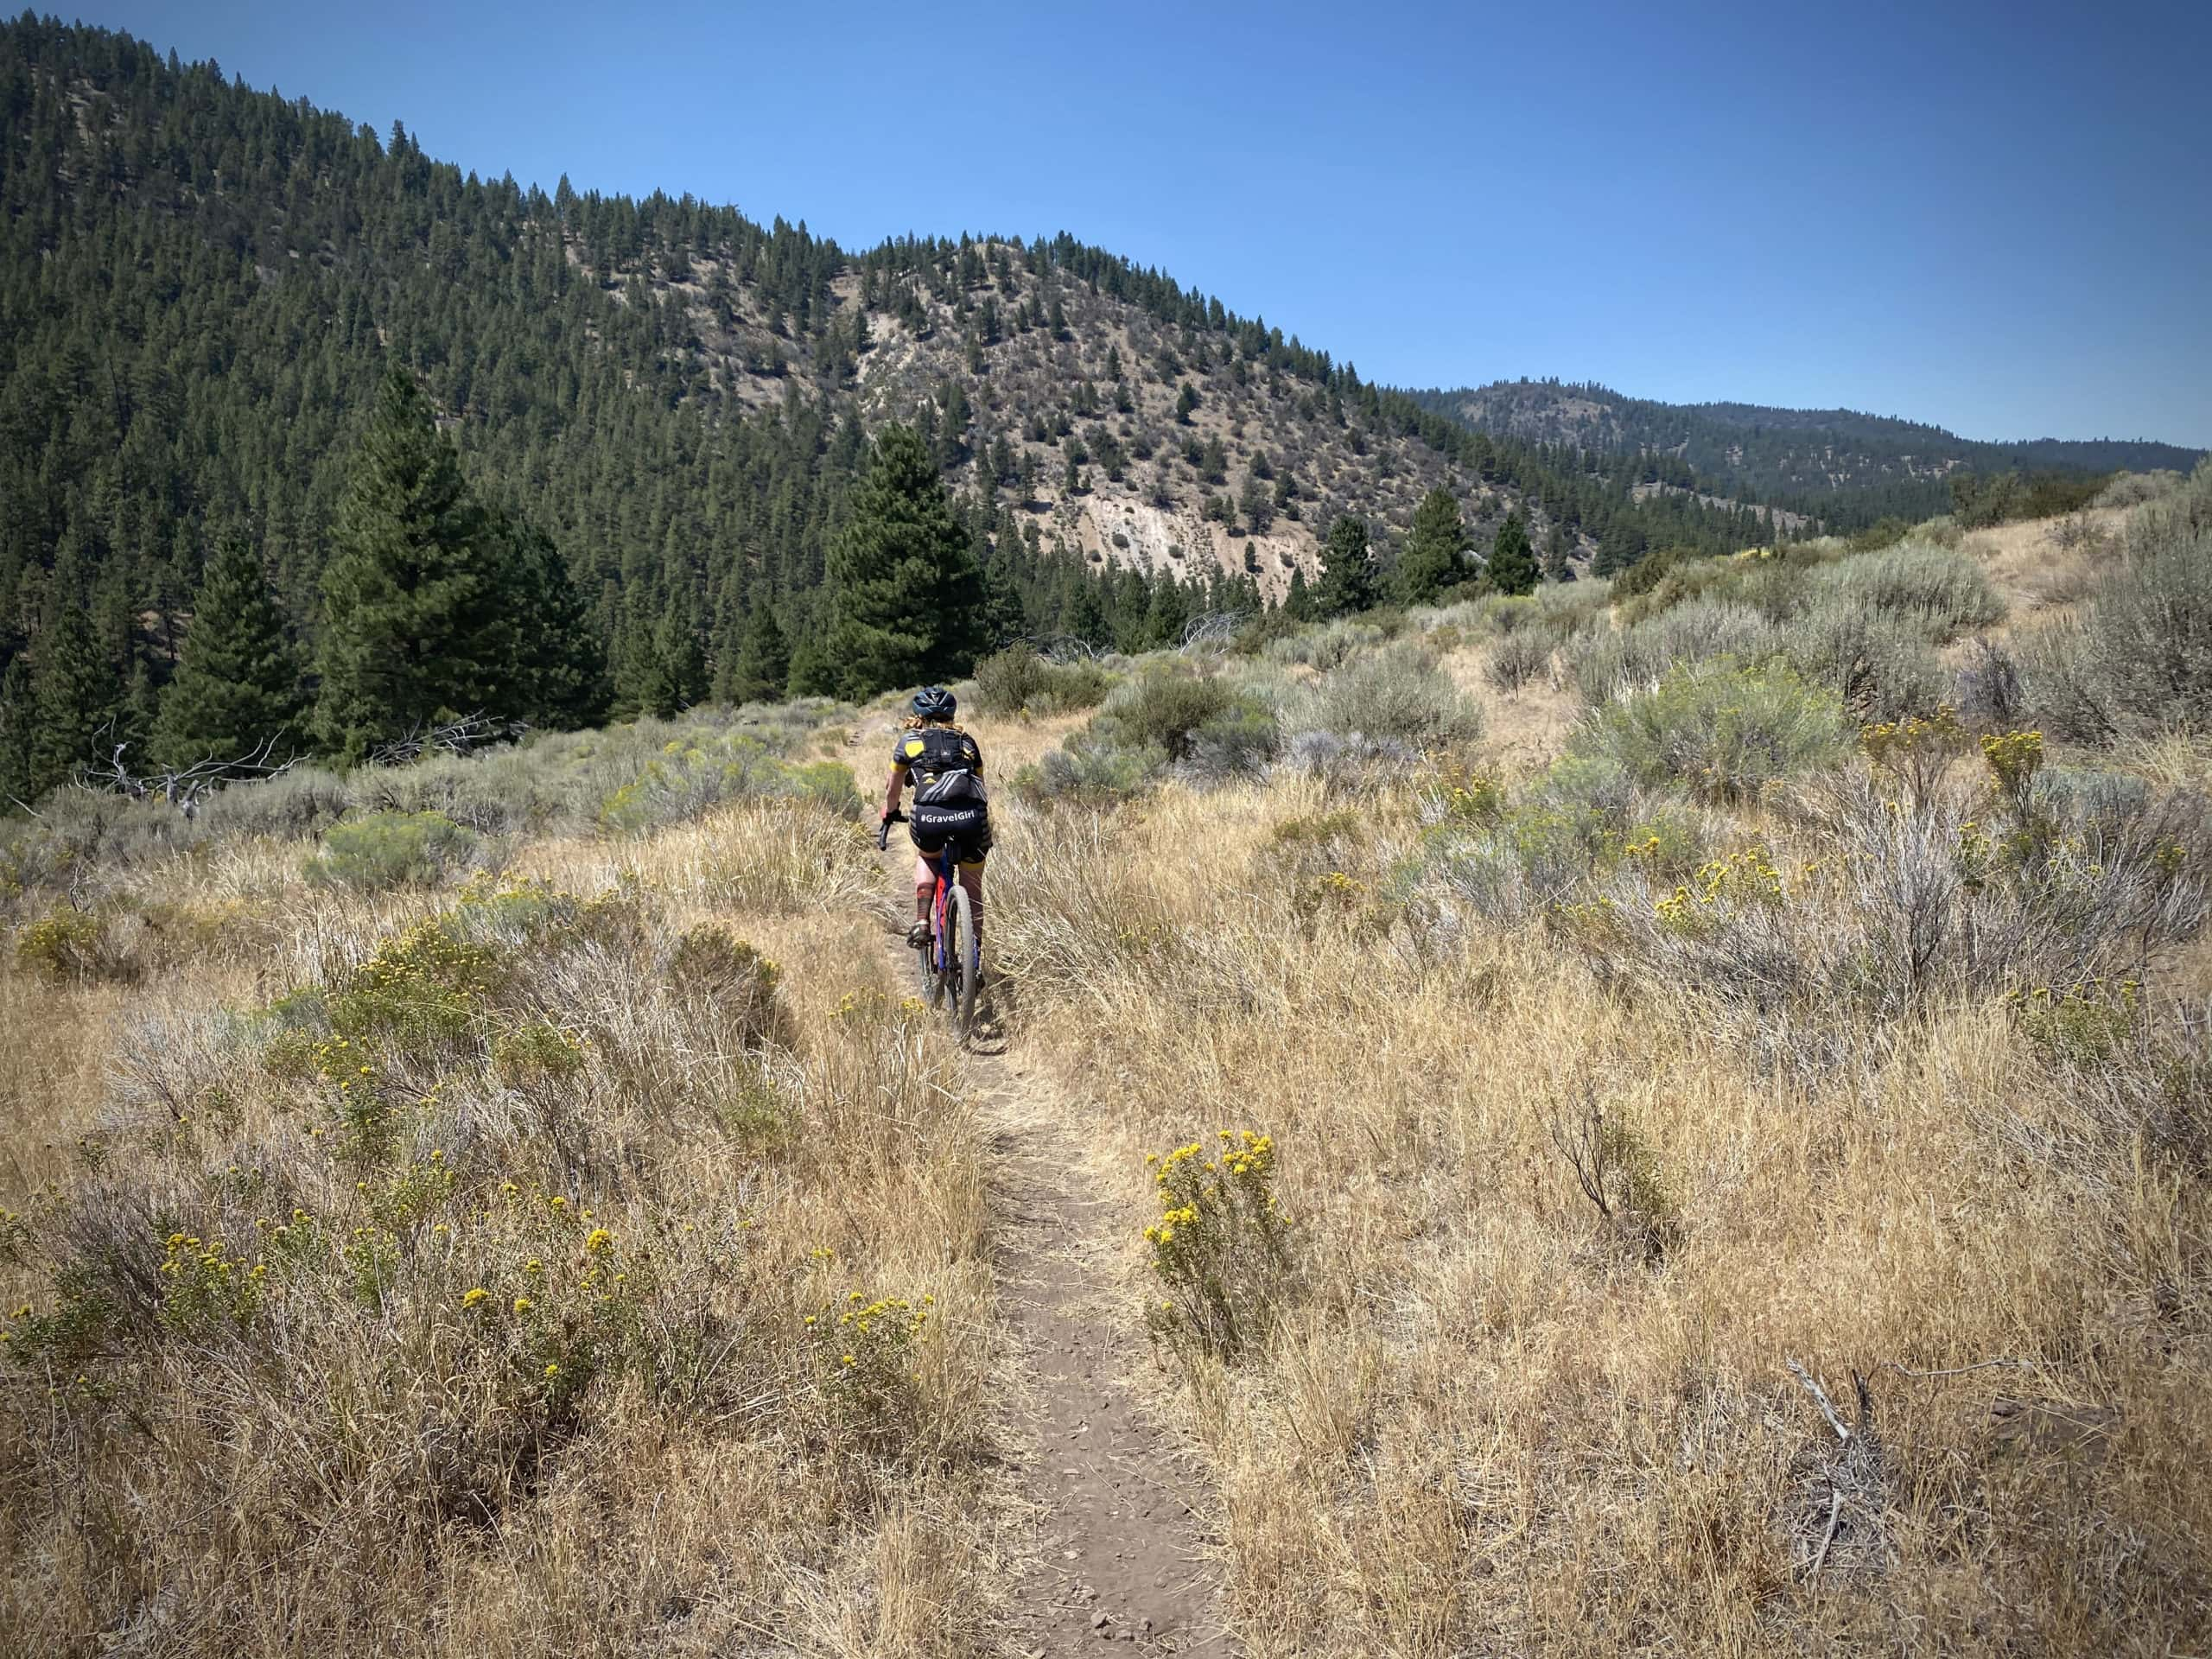 Gravel Girl riding single track in the open, rolling, grassy plains south of Paisley, Oregon.